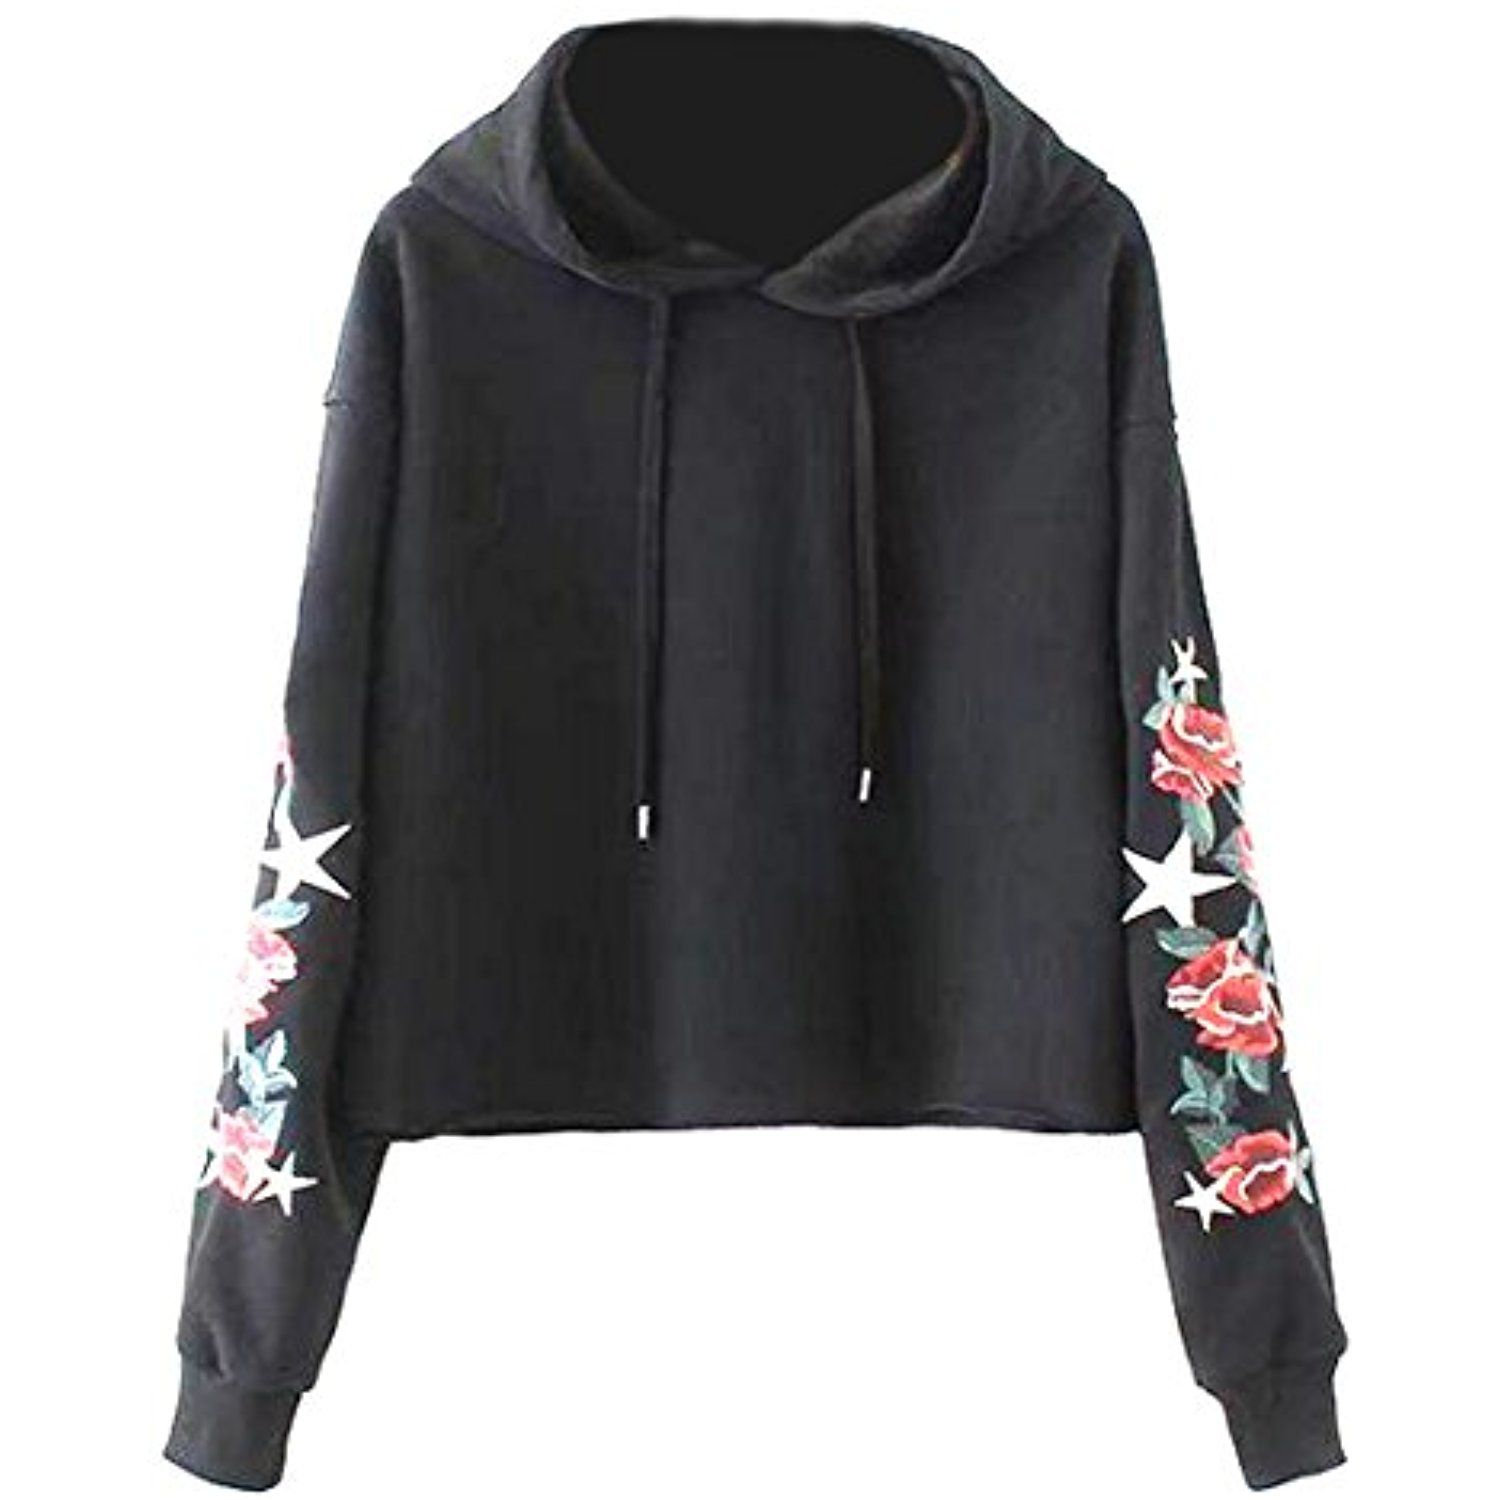 Xswsy XG Womens Loose Double Hooded Drawstring Pullover Hoodies Sweatshirt With Pockets